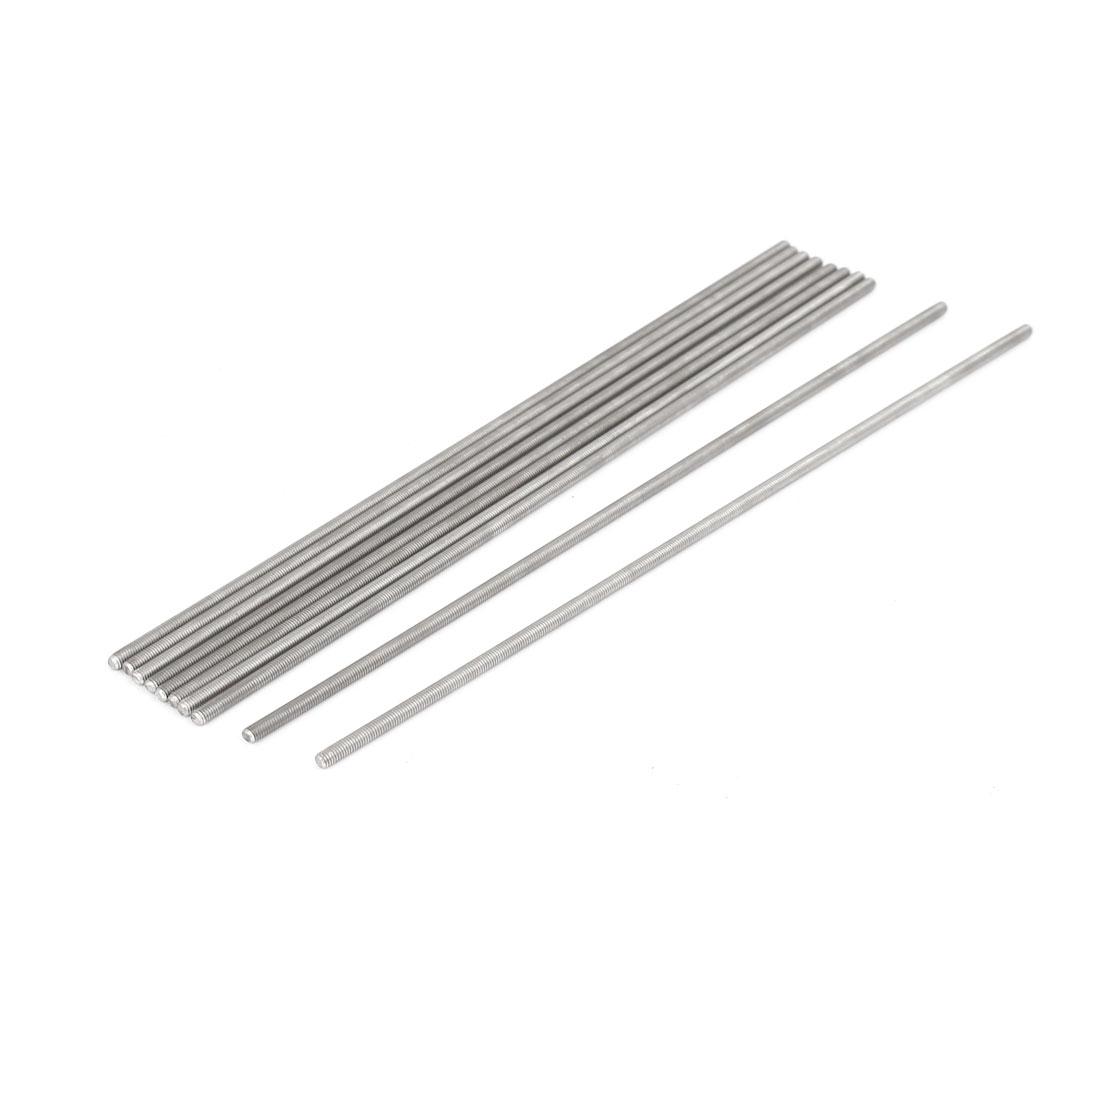 Uxcell M3 X 170mm 0 5mm Pitch 304 Stainless Steel Fully